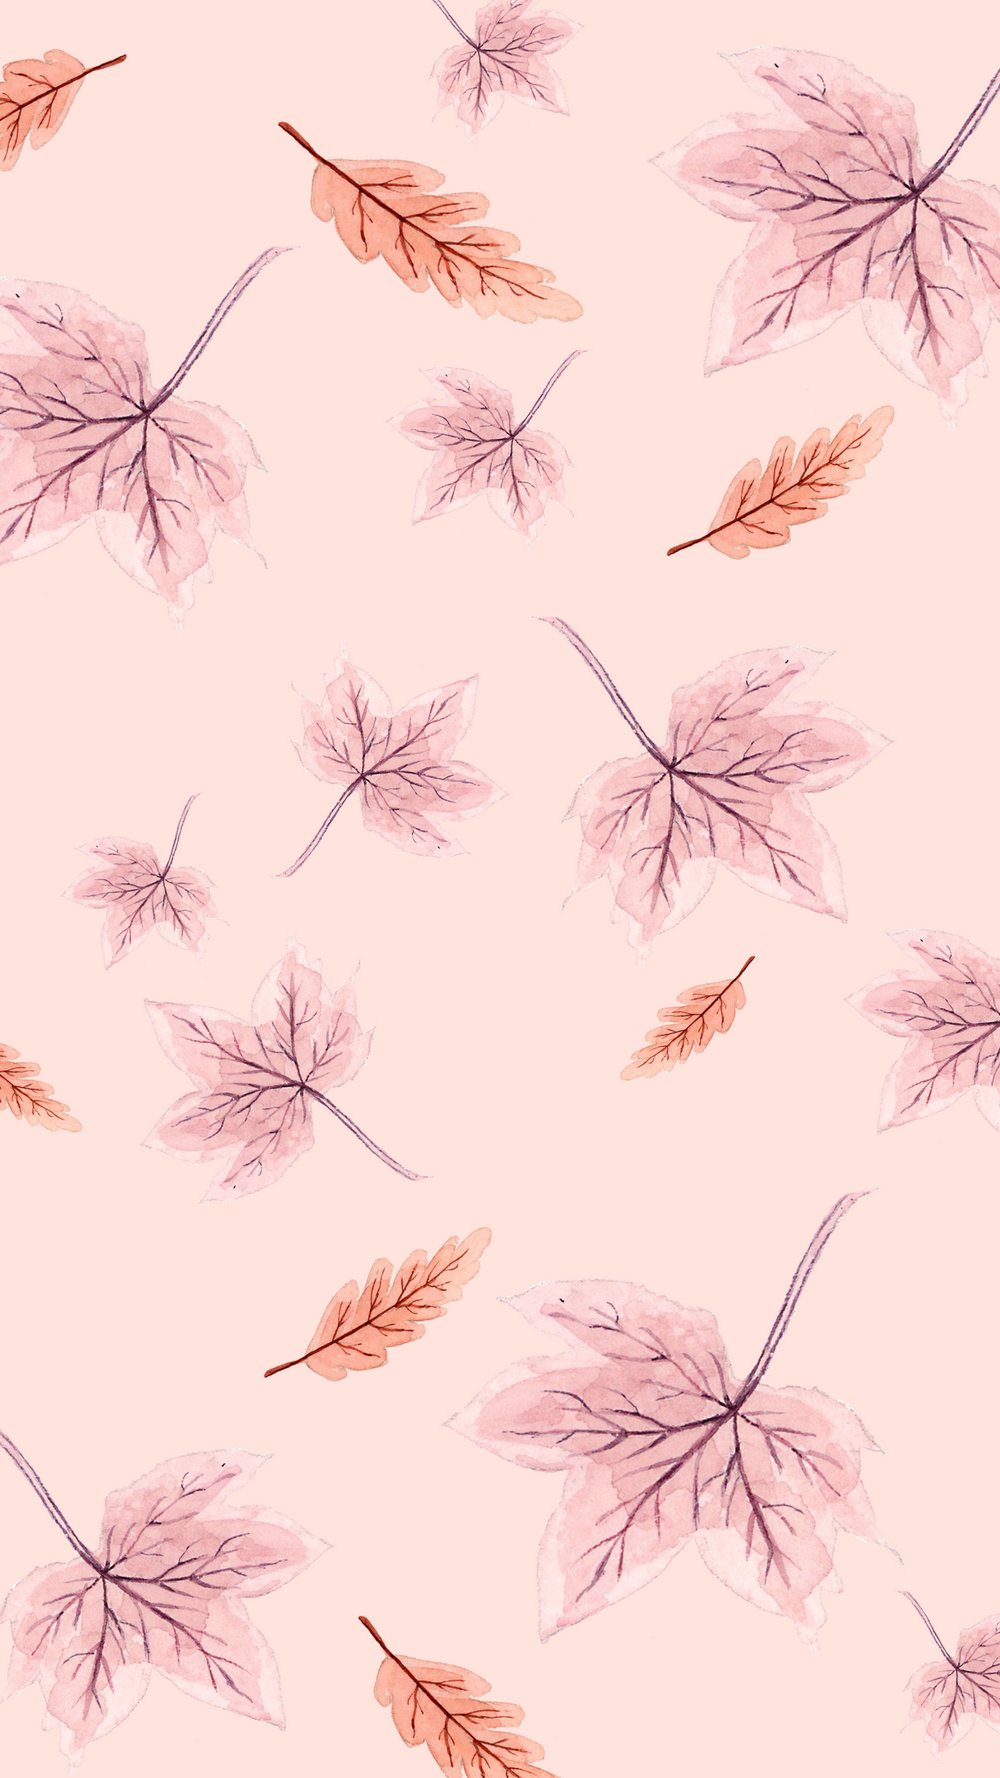 Fall-Cell-Phone-Wallpaper-Background-Leaves-Pink.jpg